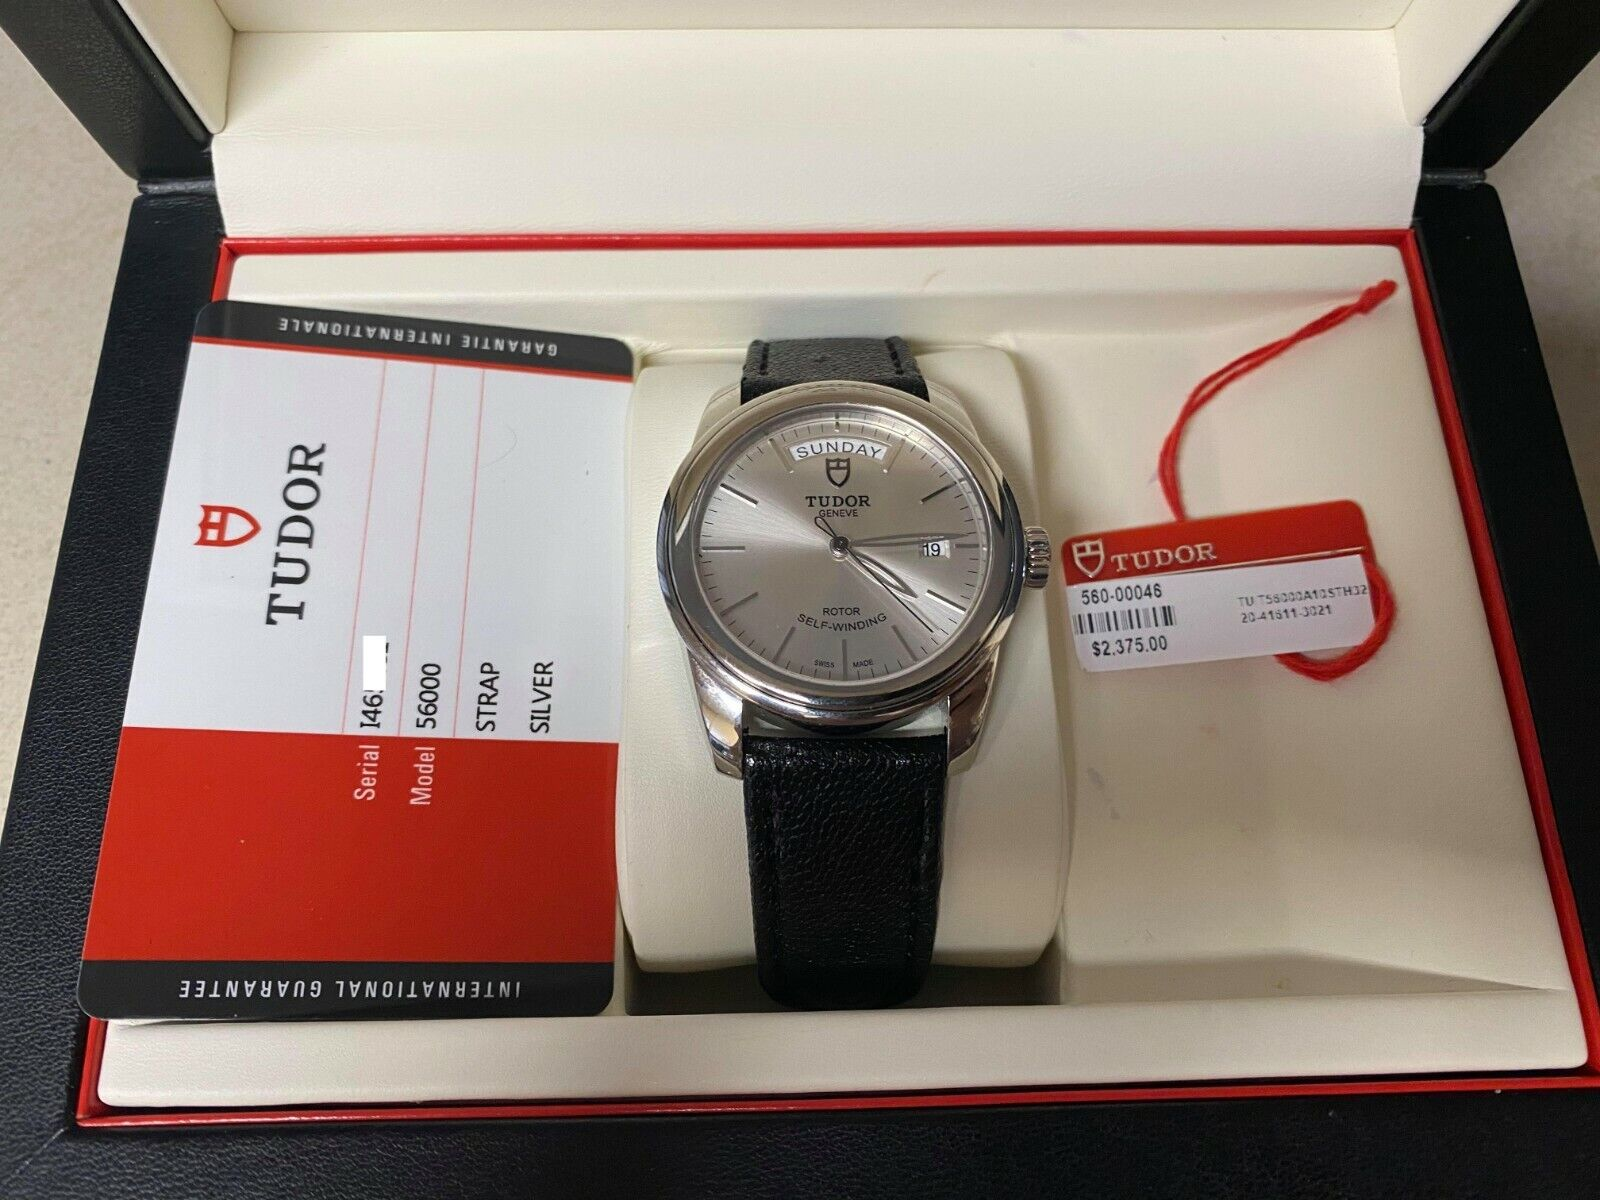 Tudor 56000 Glamour Day Date Self-Winding Watch Box & Card w/ Factory Warranty - watch picture 1